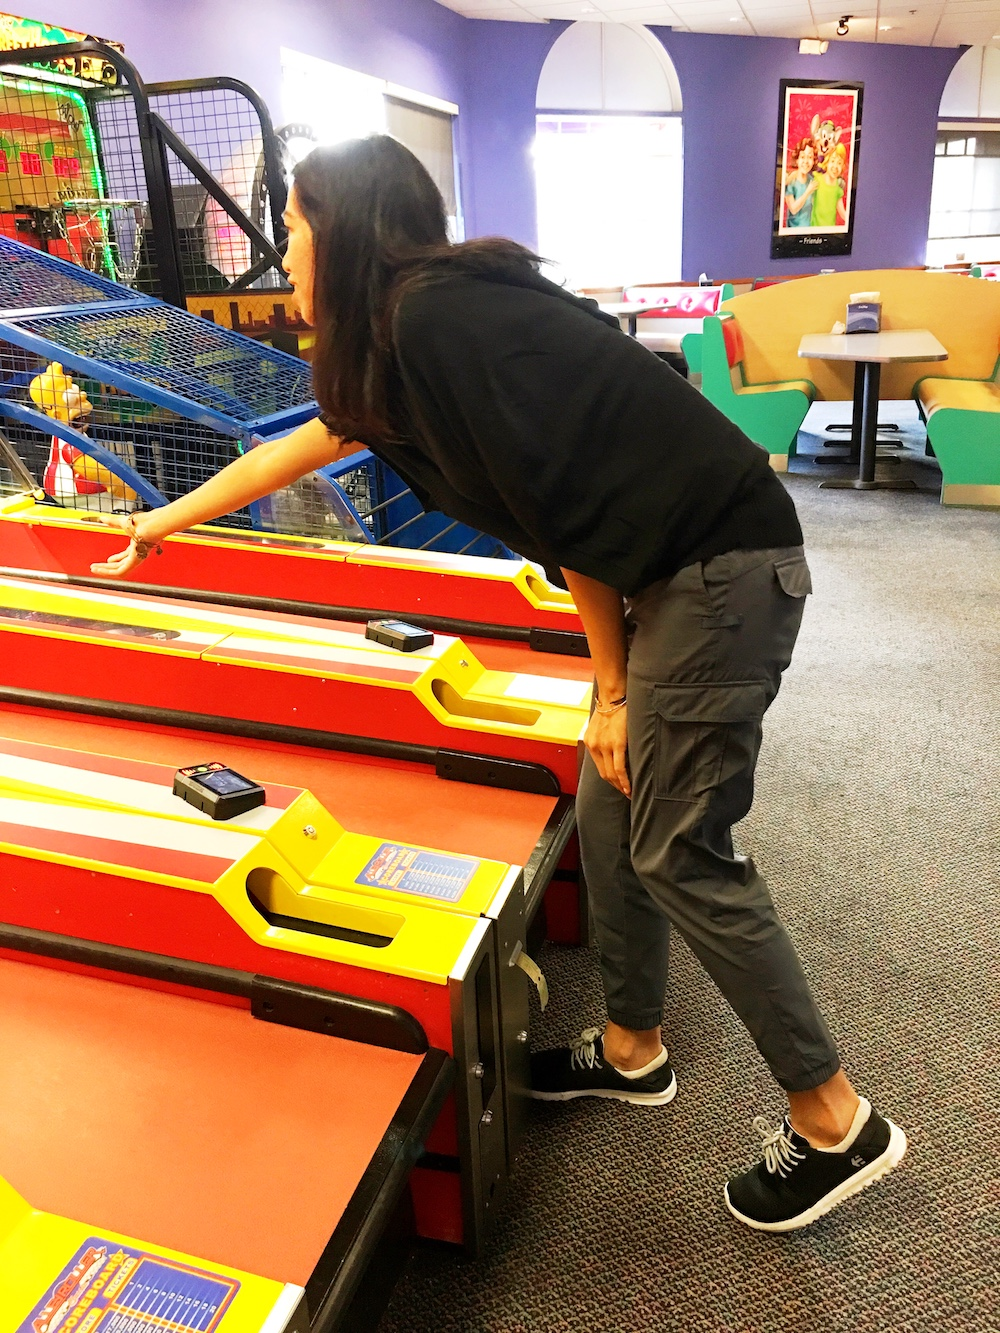 Mom playing at Chuck E. Cheese's - LivingMiVidaLoca.com